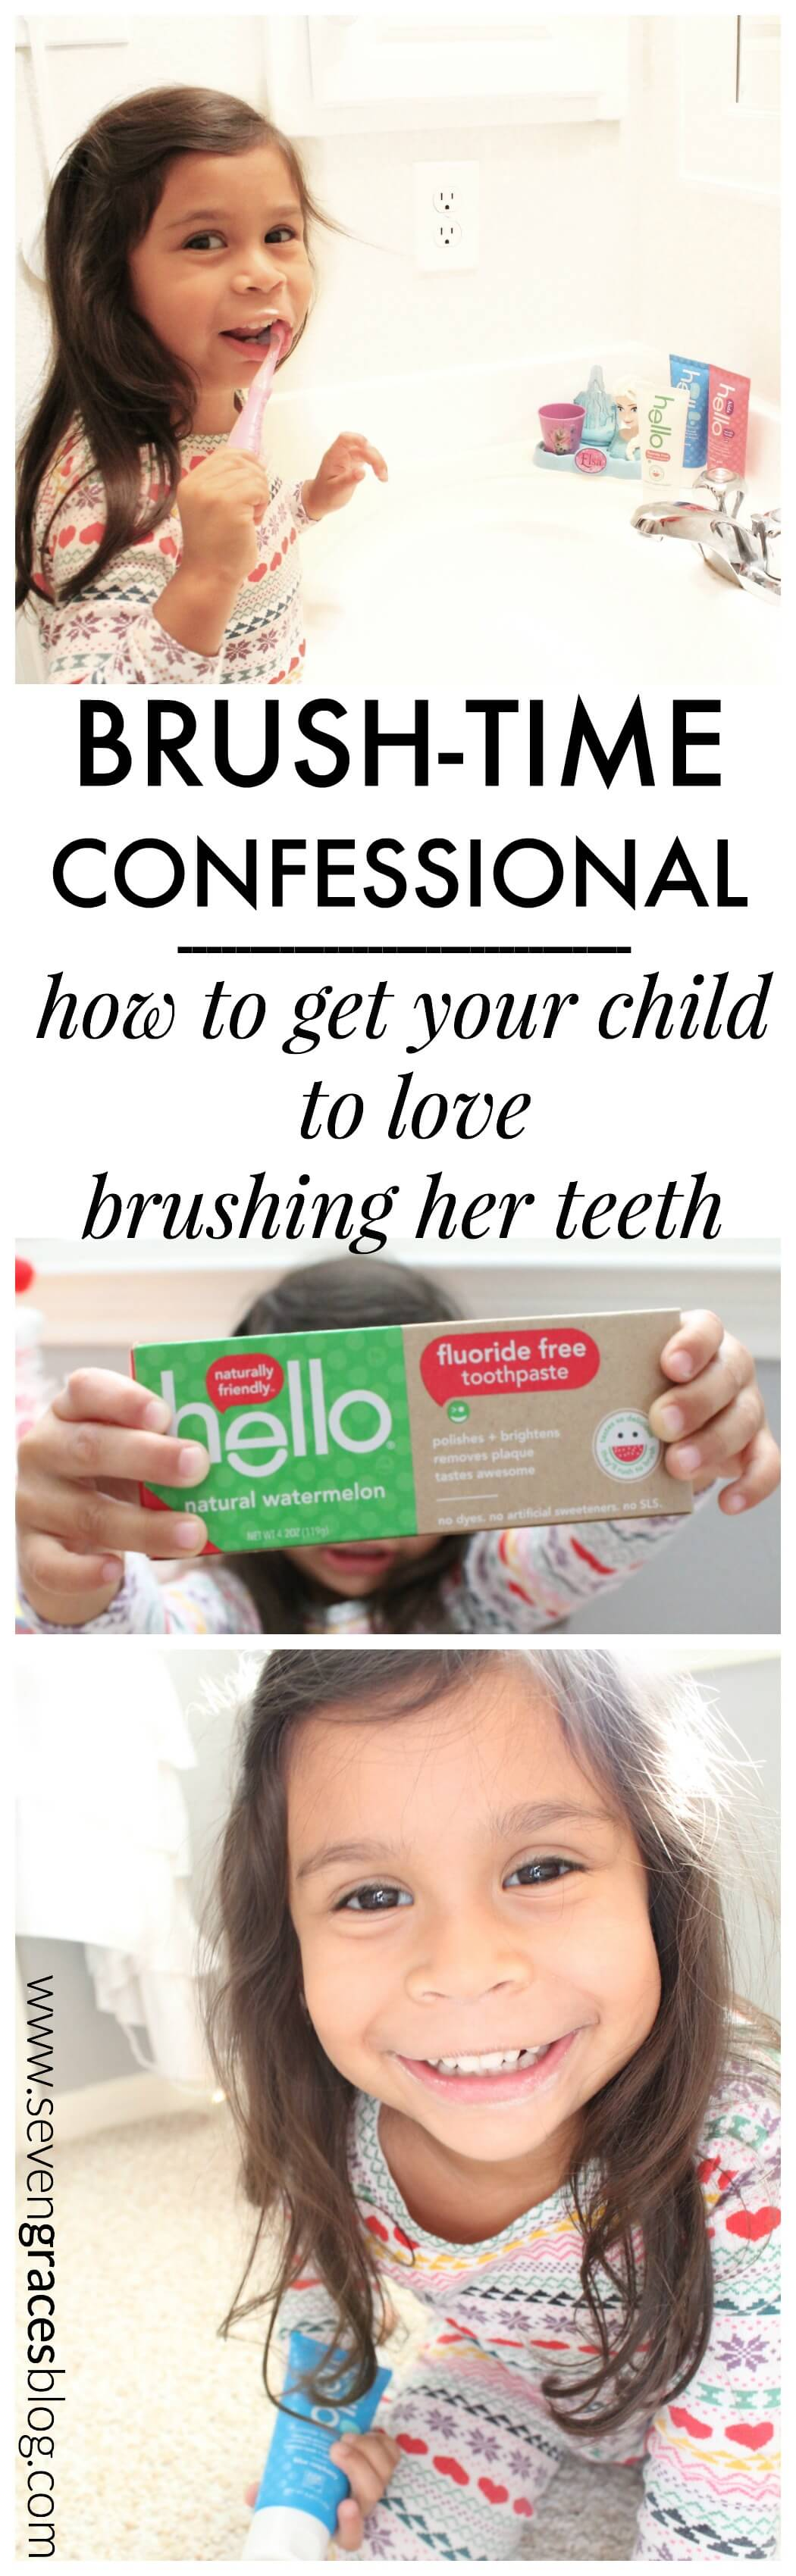 Brush-Time Confessional: How to Get Your Child to Love Brushing Her Teeth